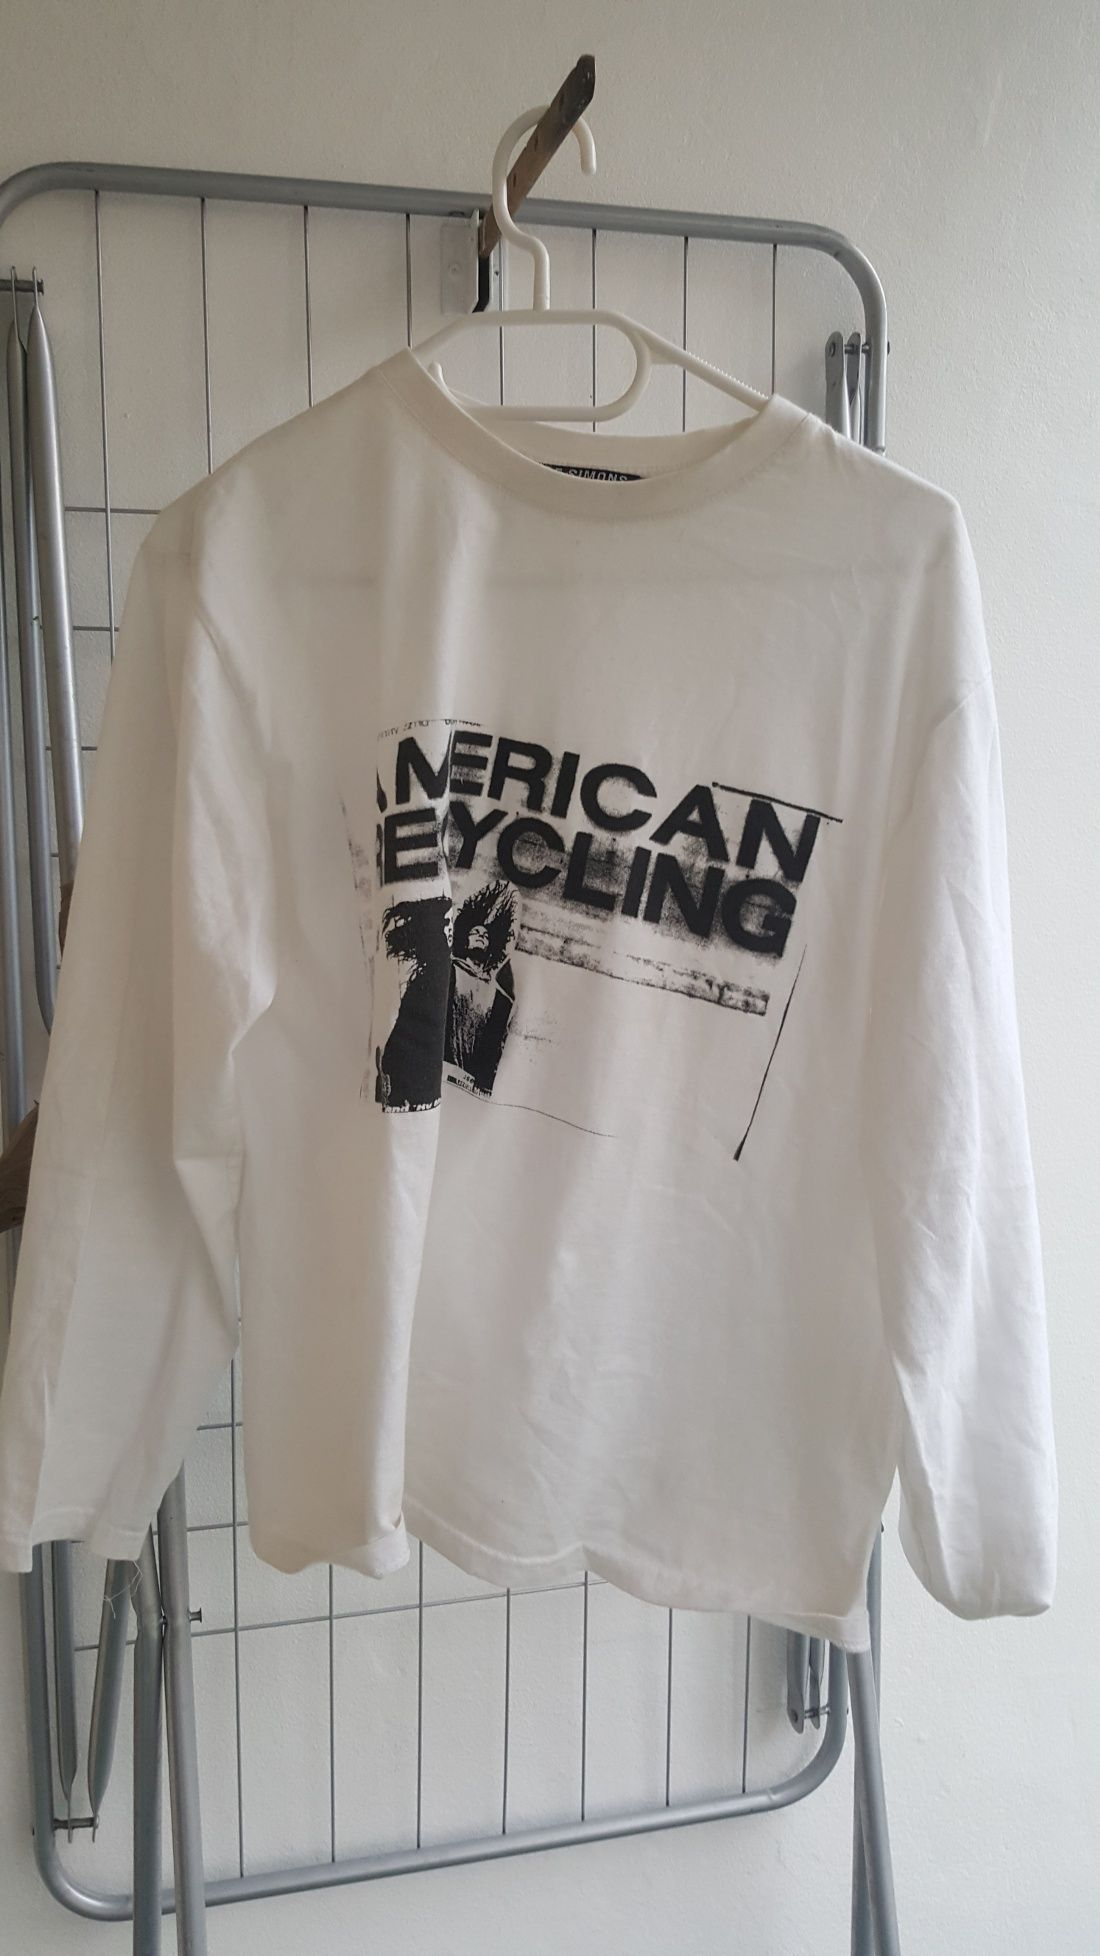 7831a49c2 Raf Simons American Recycling Size S  264 - Grailed